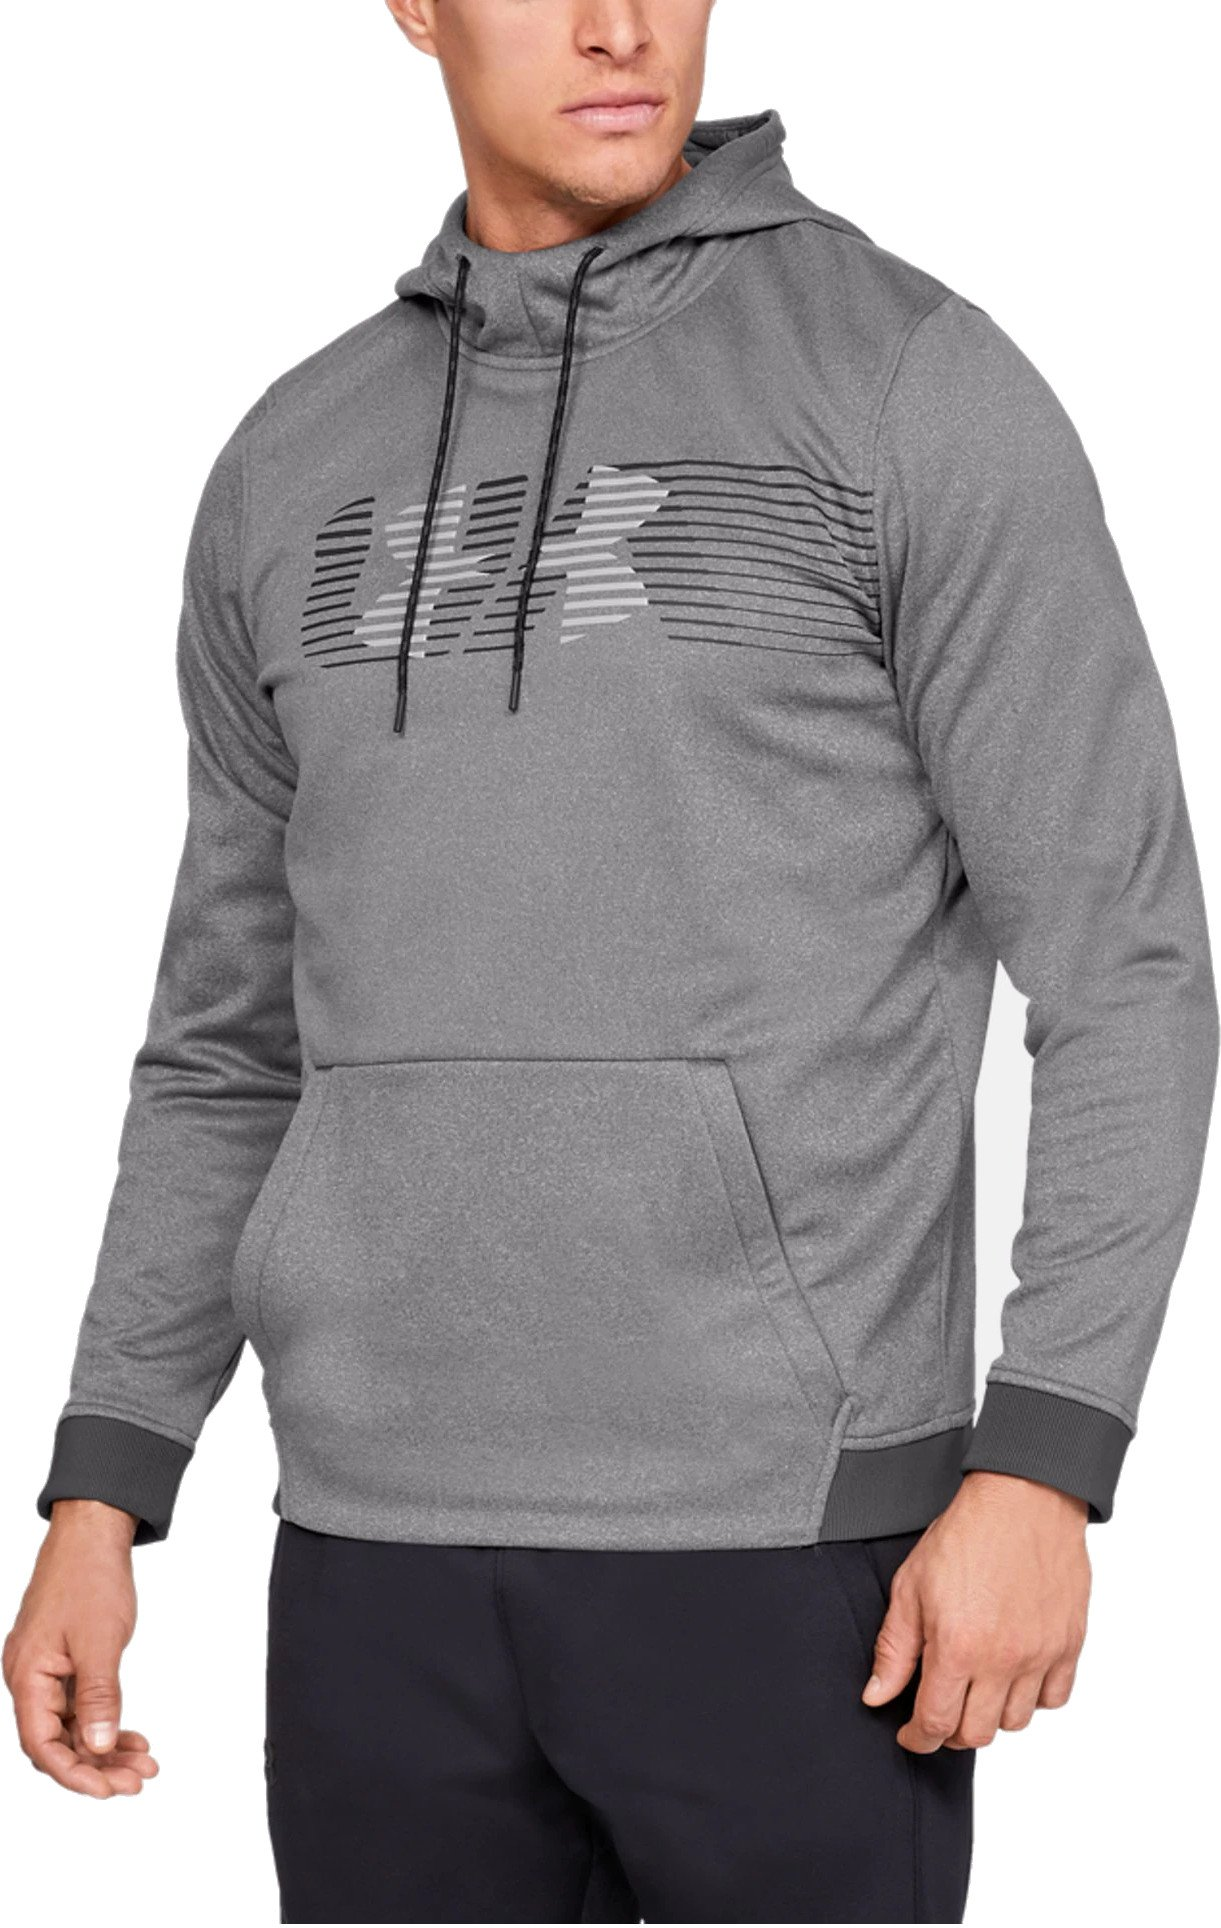 Hooded sweatshirt Under Armour ARMOUR FLEECE SPECTRUM PO HOODIE